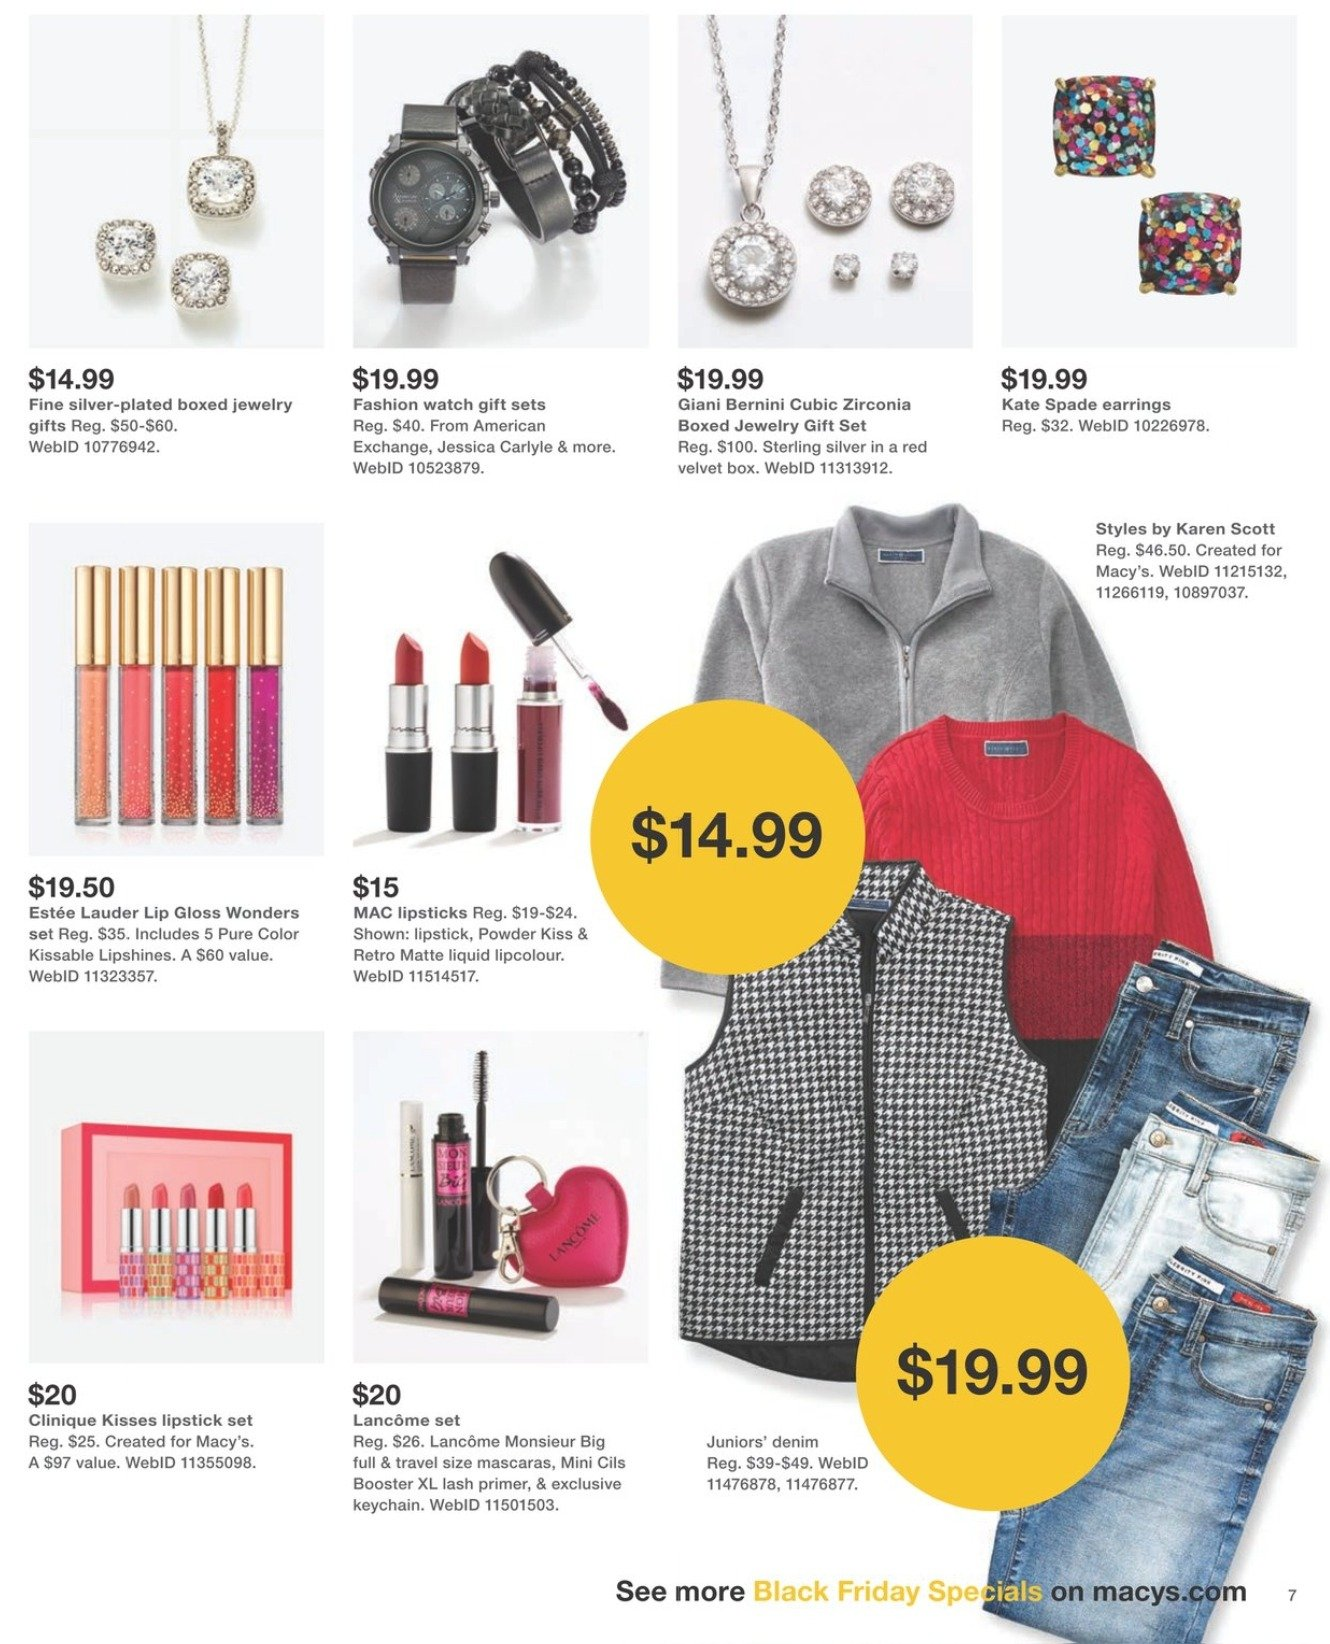 Macy's Black Friday 2020 Page 7